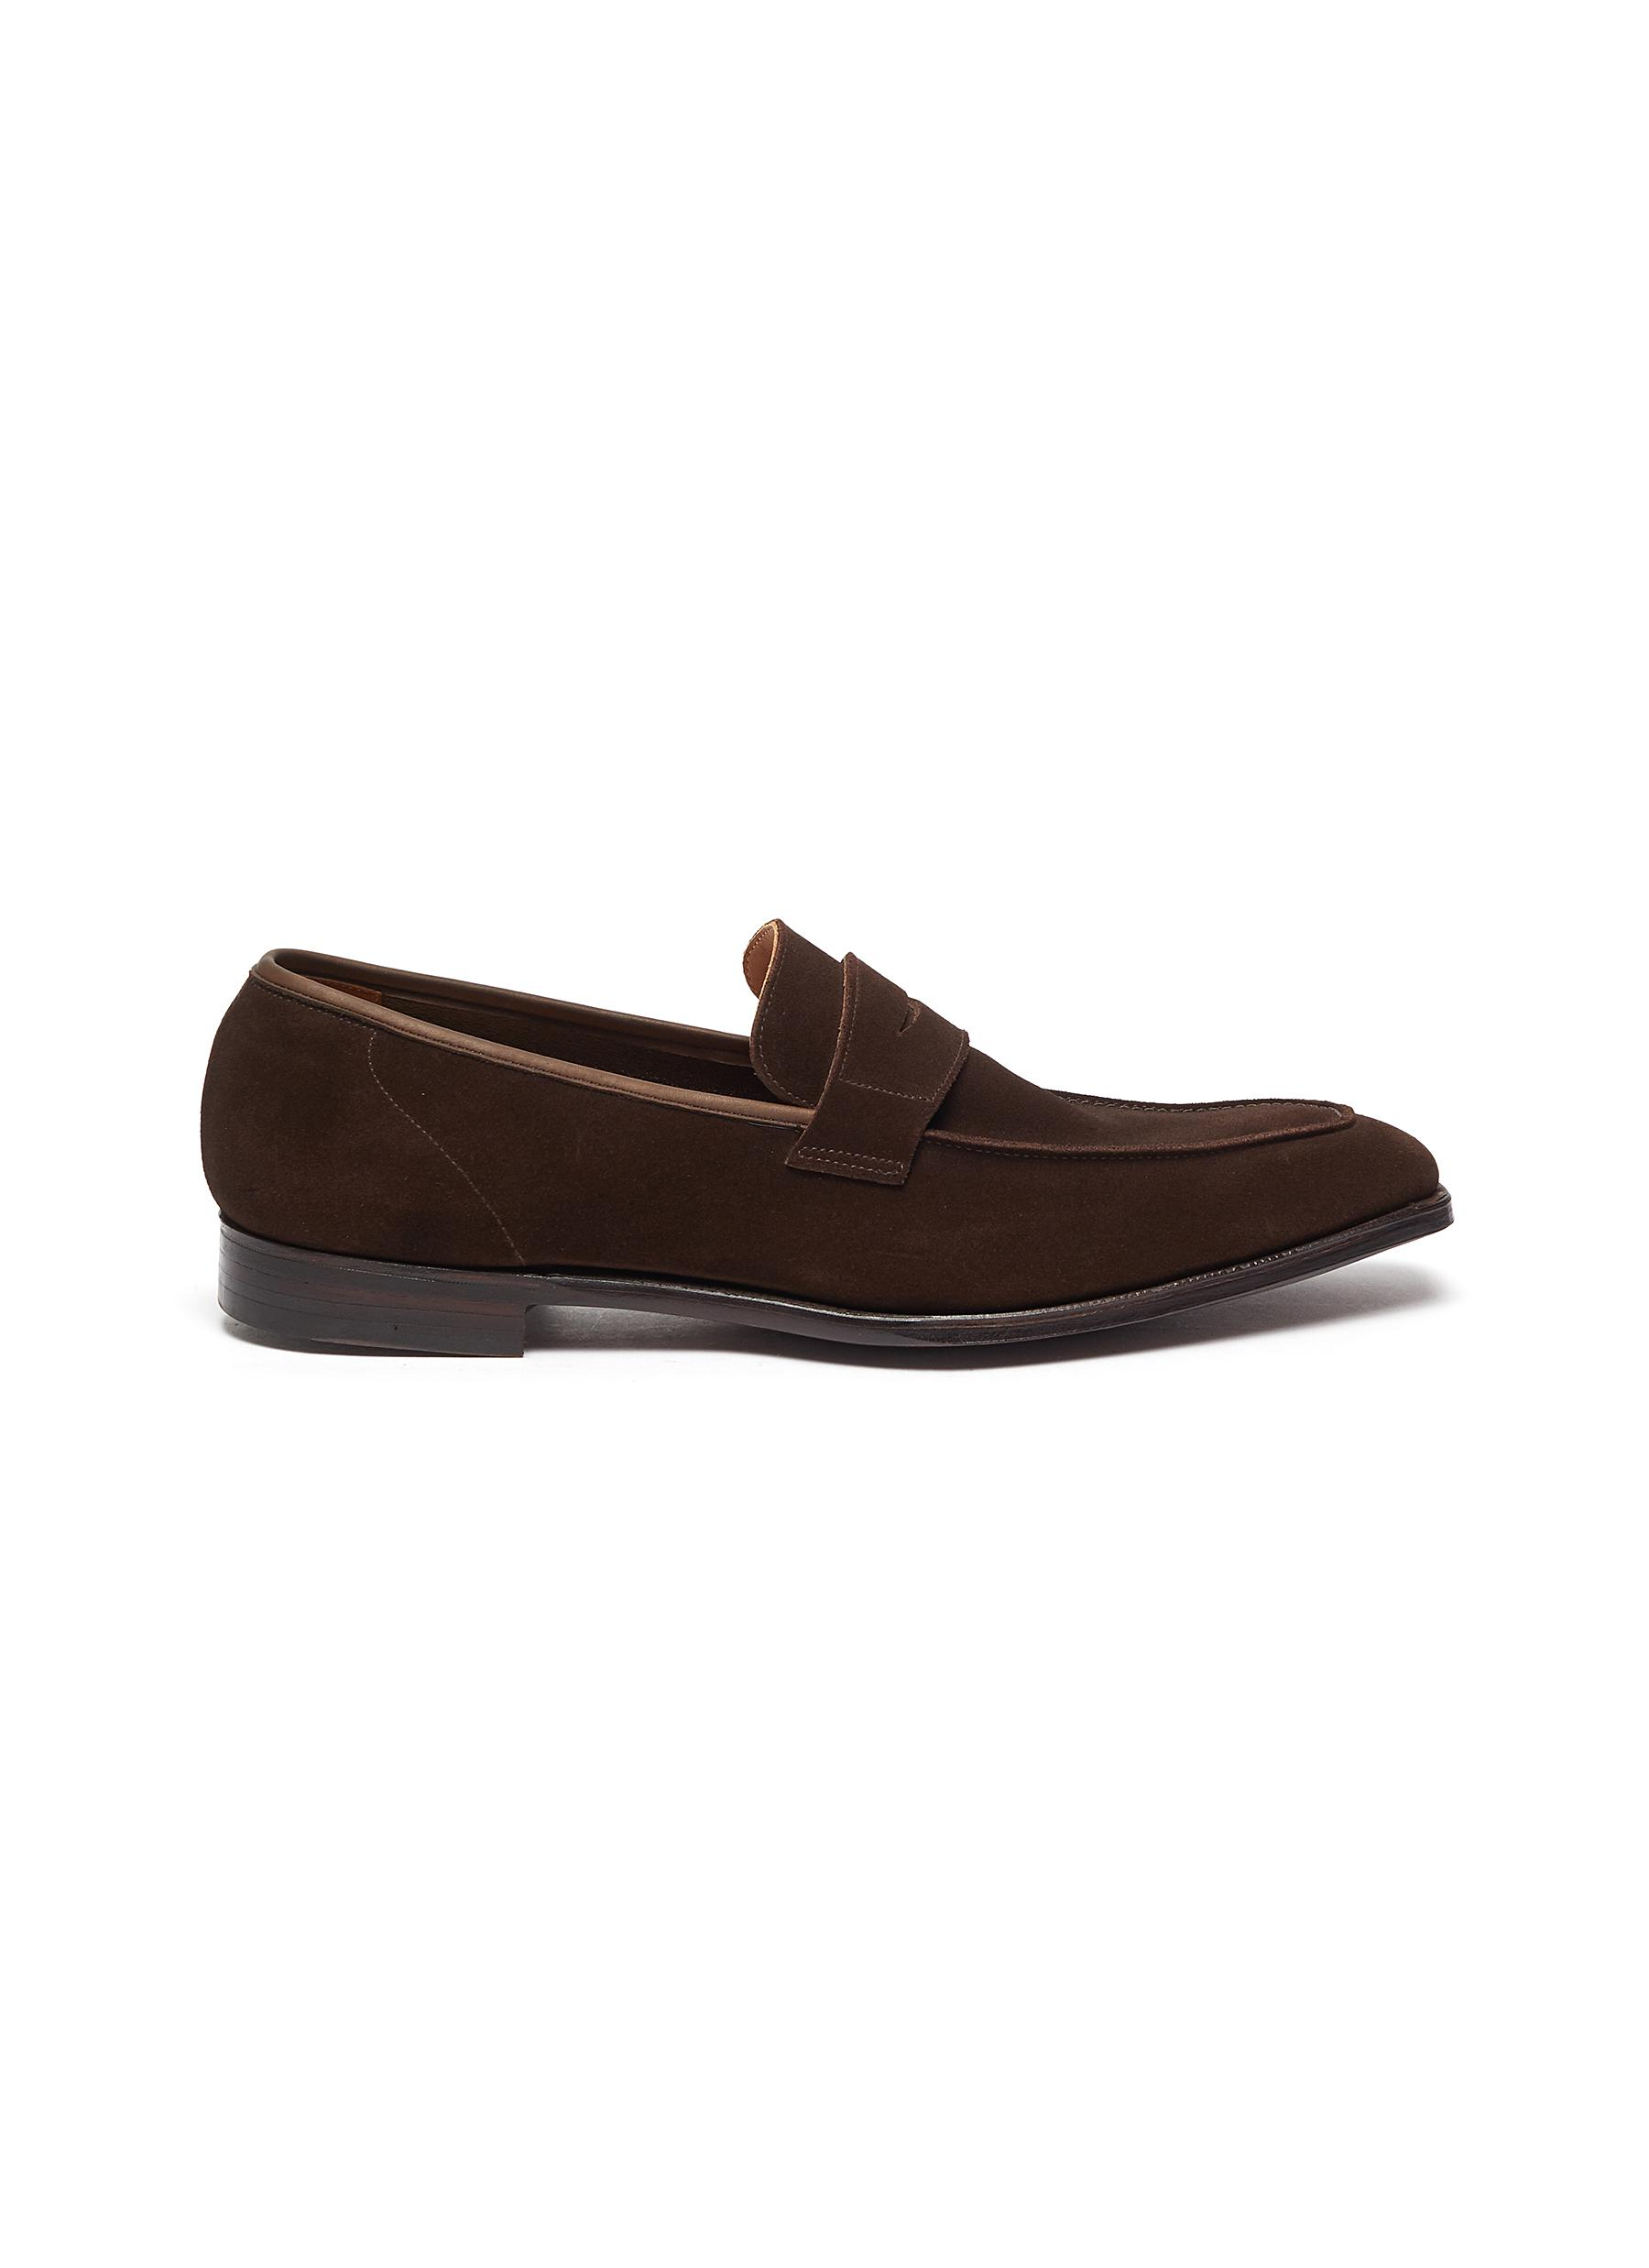 George' Chisel Toe Suede Penny Loafers